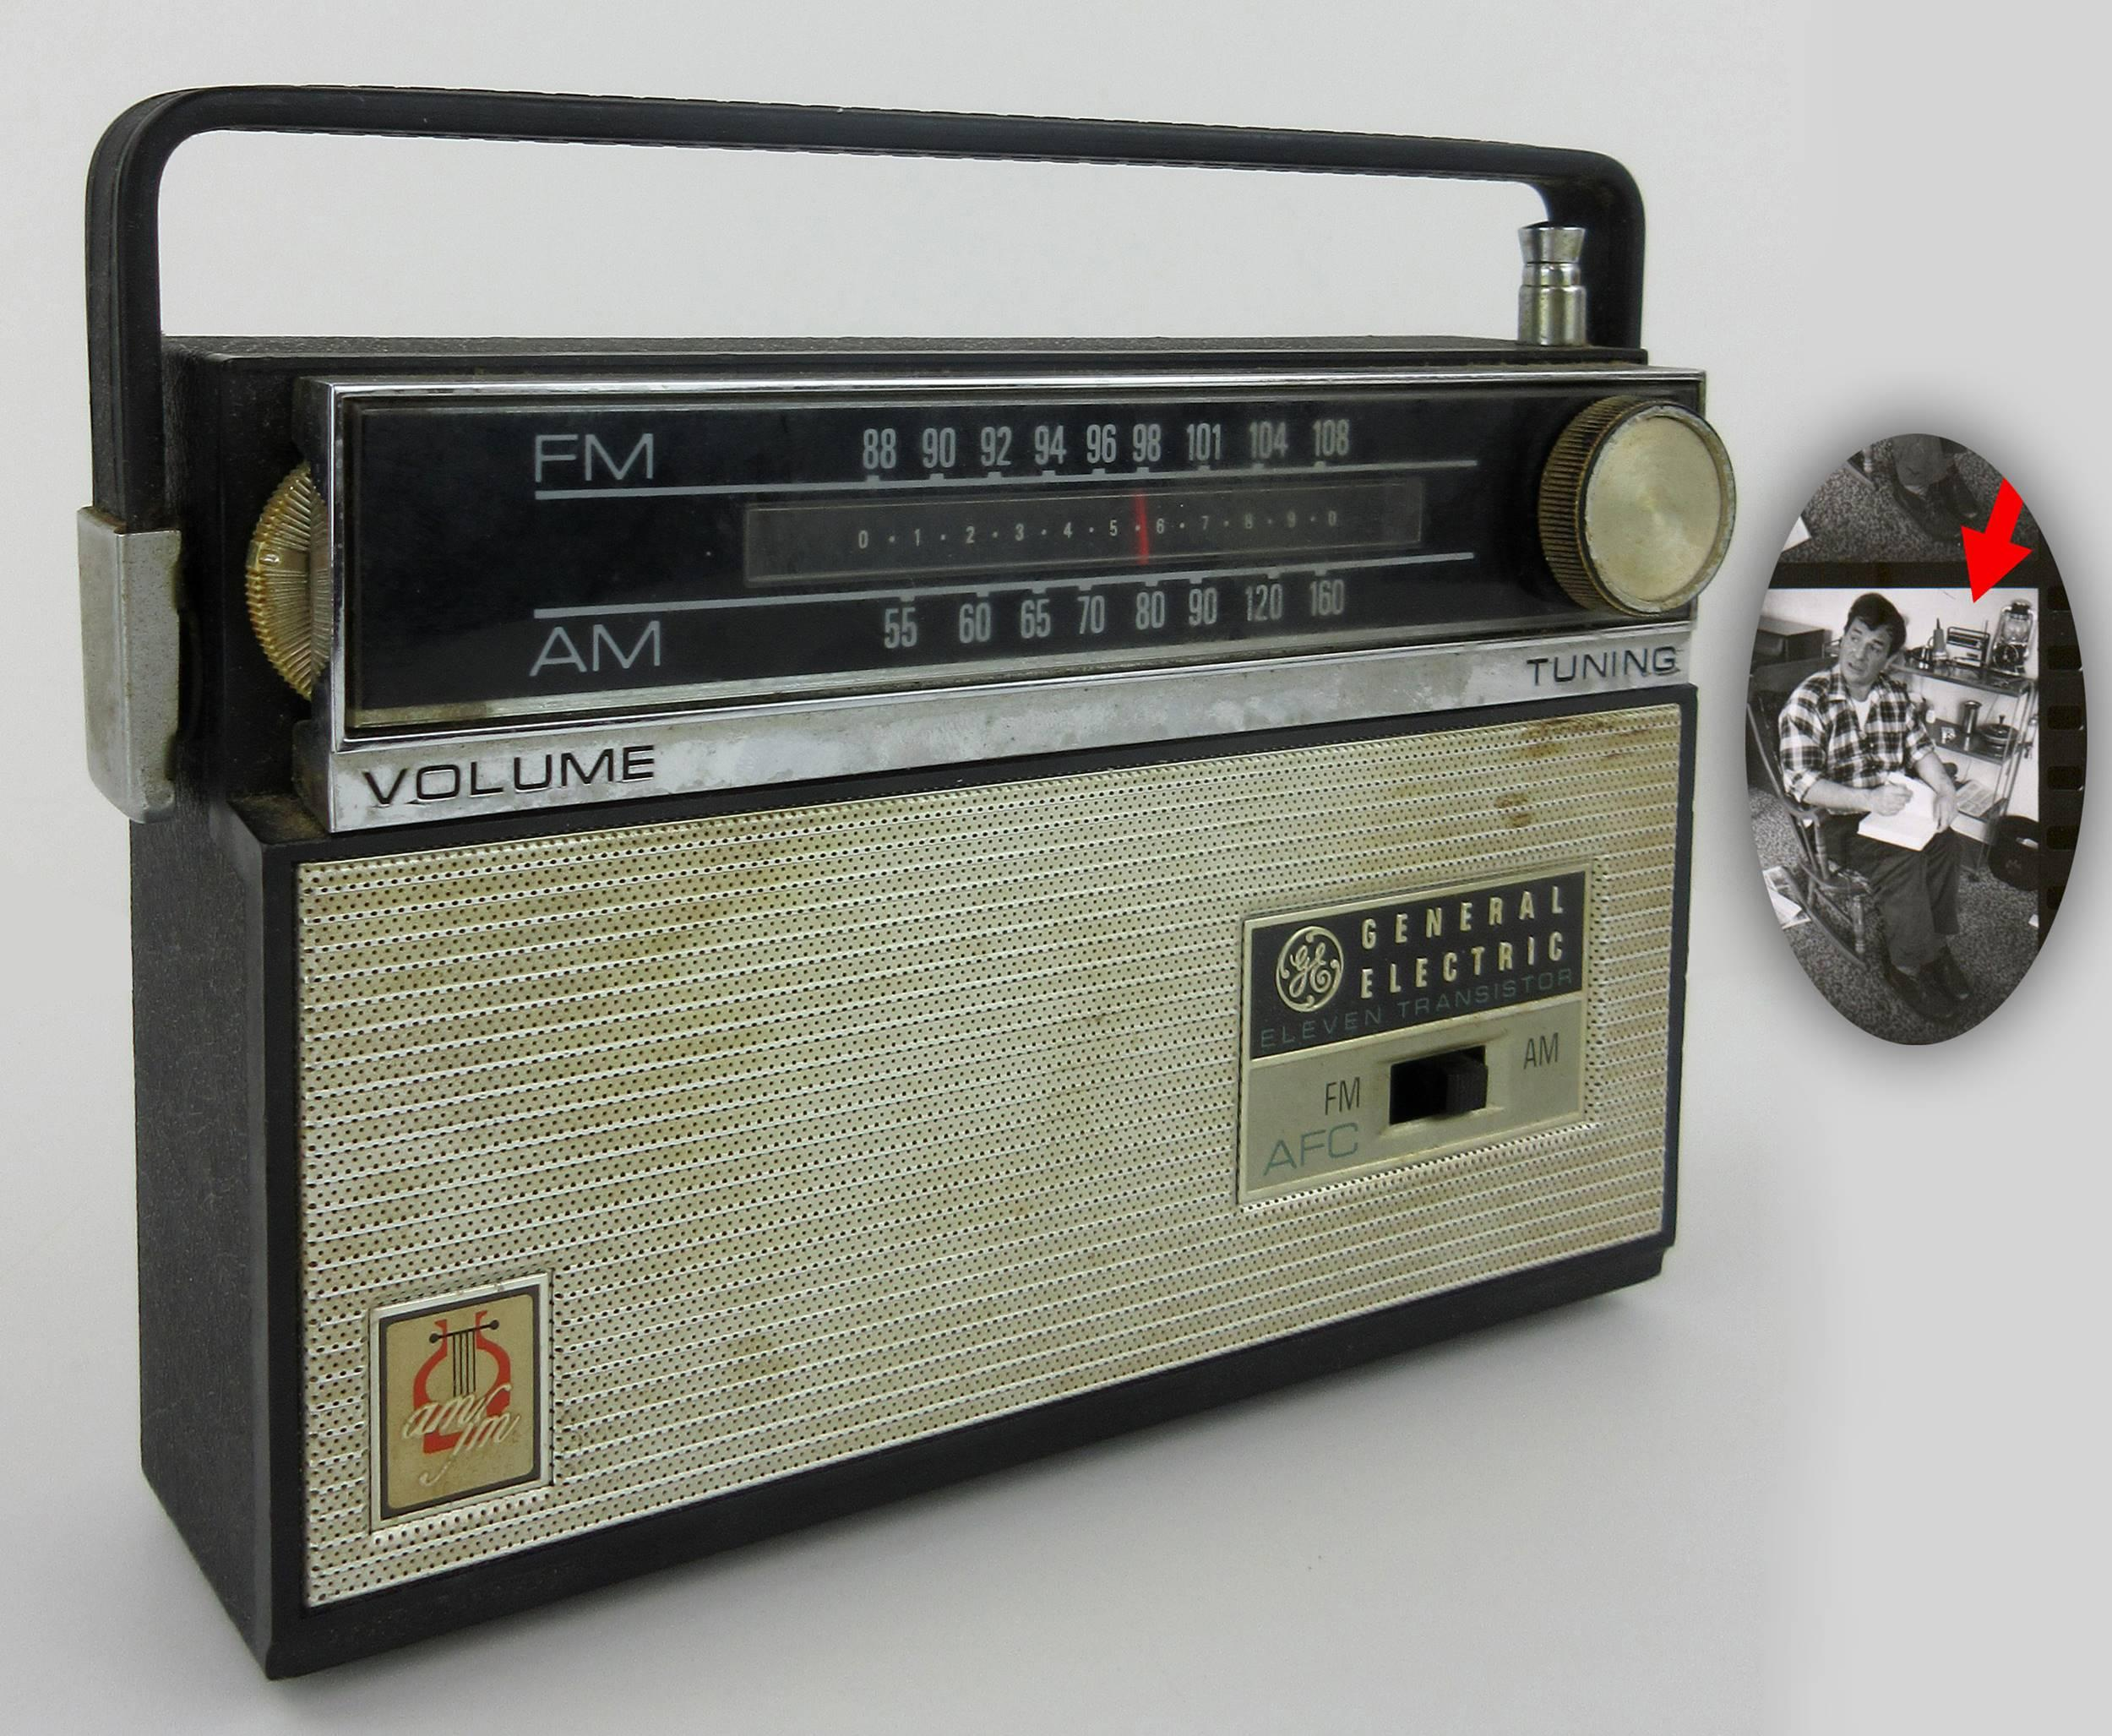 Jack Kerouac's Personally Owned Vintage Portable Radio, ca. 1965-1966